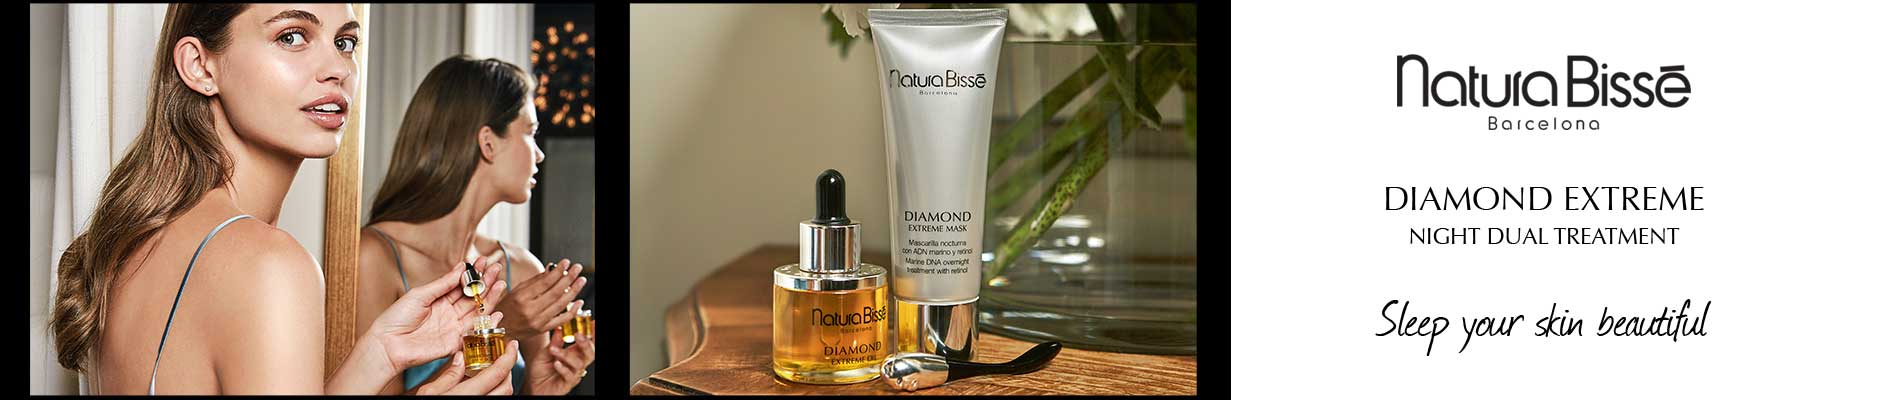 Natura Bisse Barcelona: Diamond Extreme Night Dual Treatment - Sleep your skin beautiful